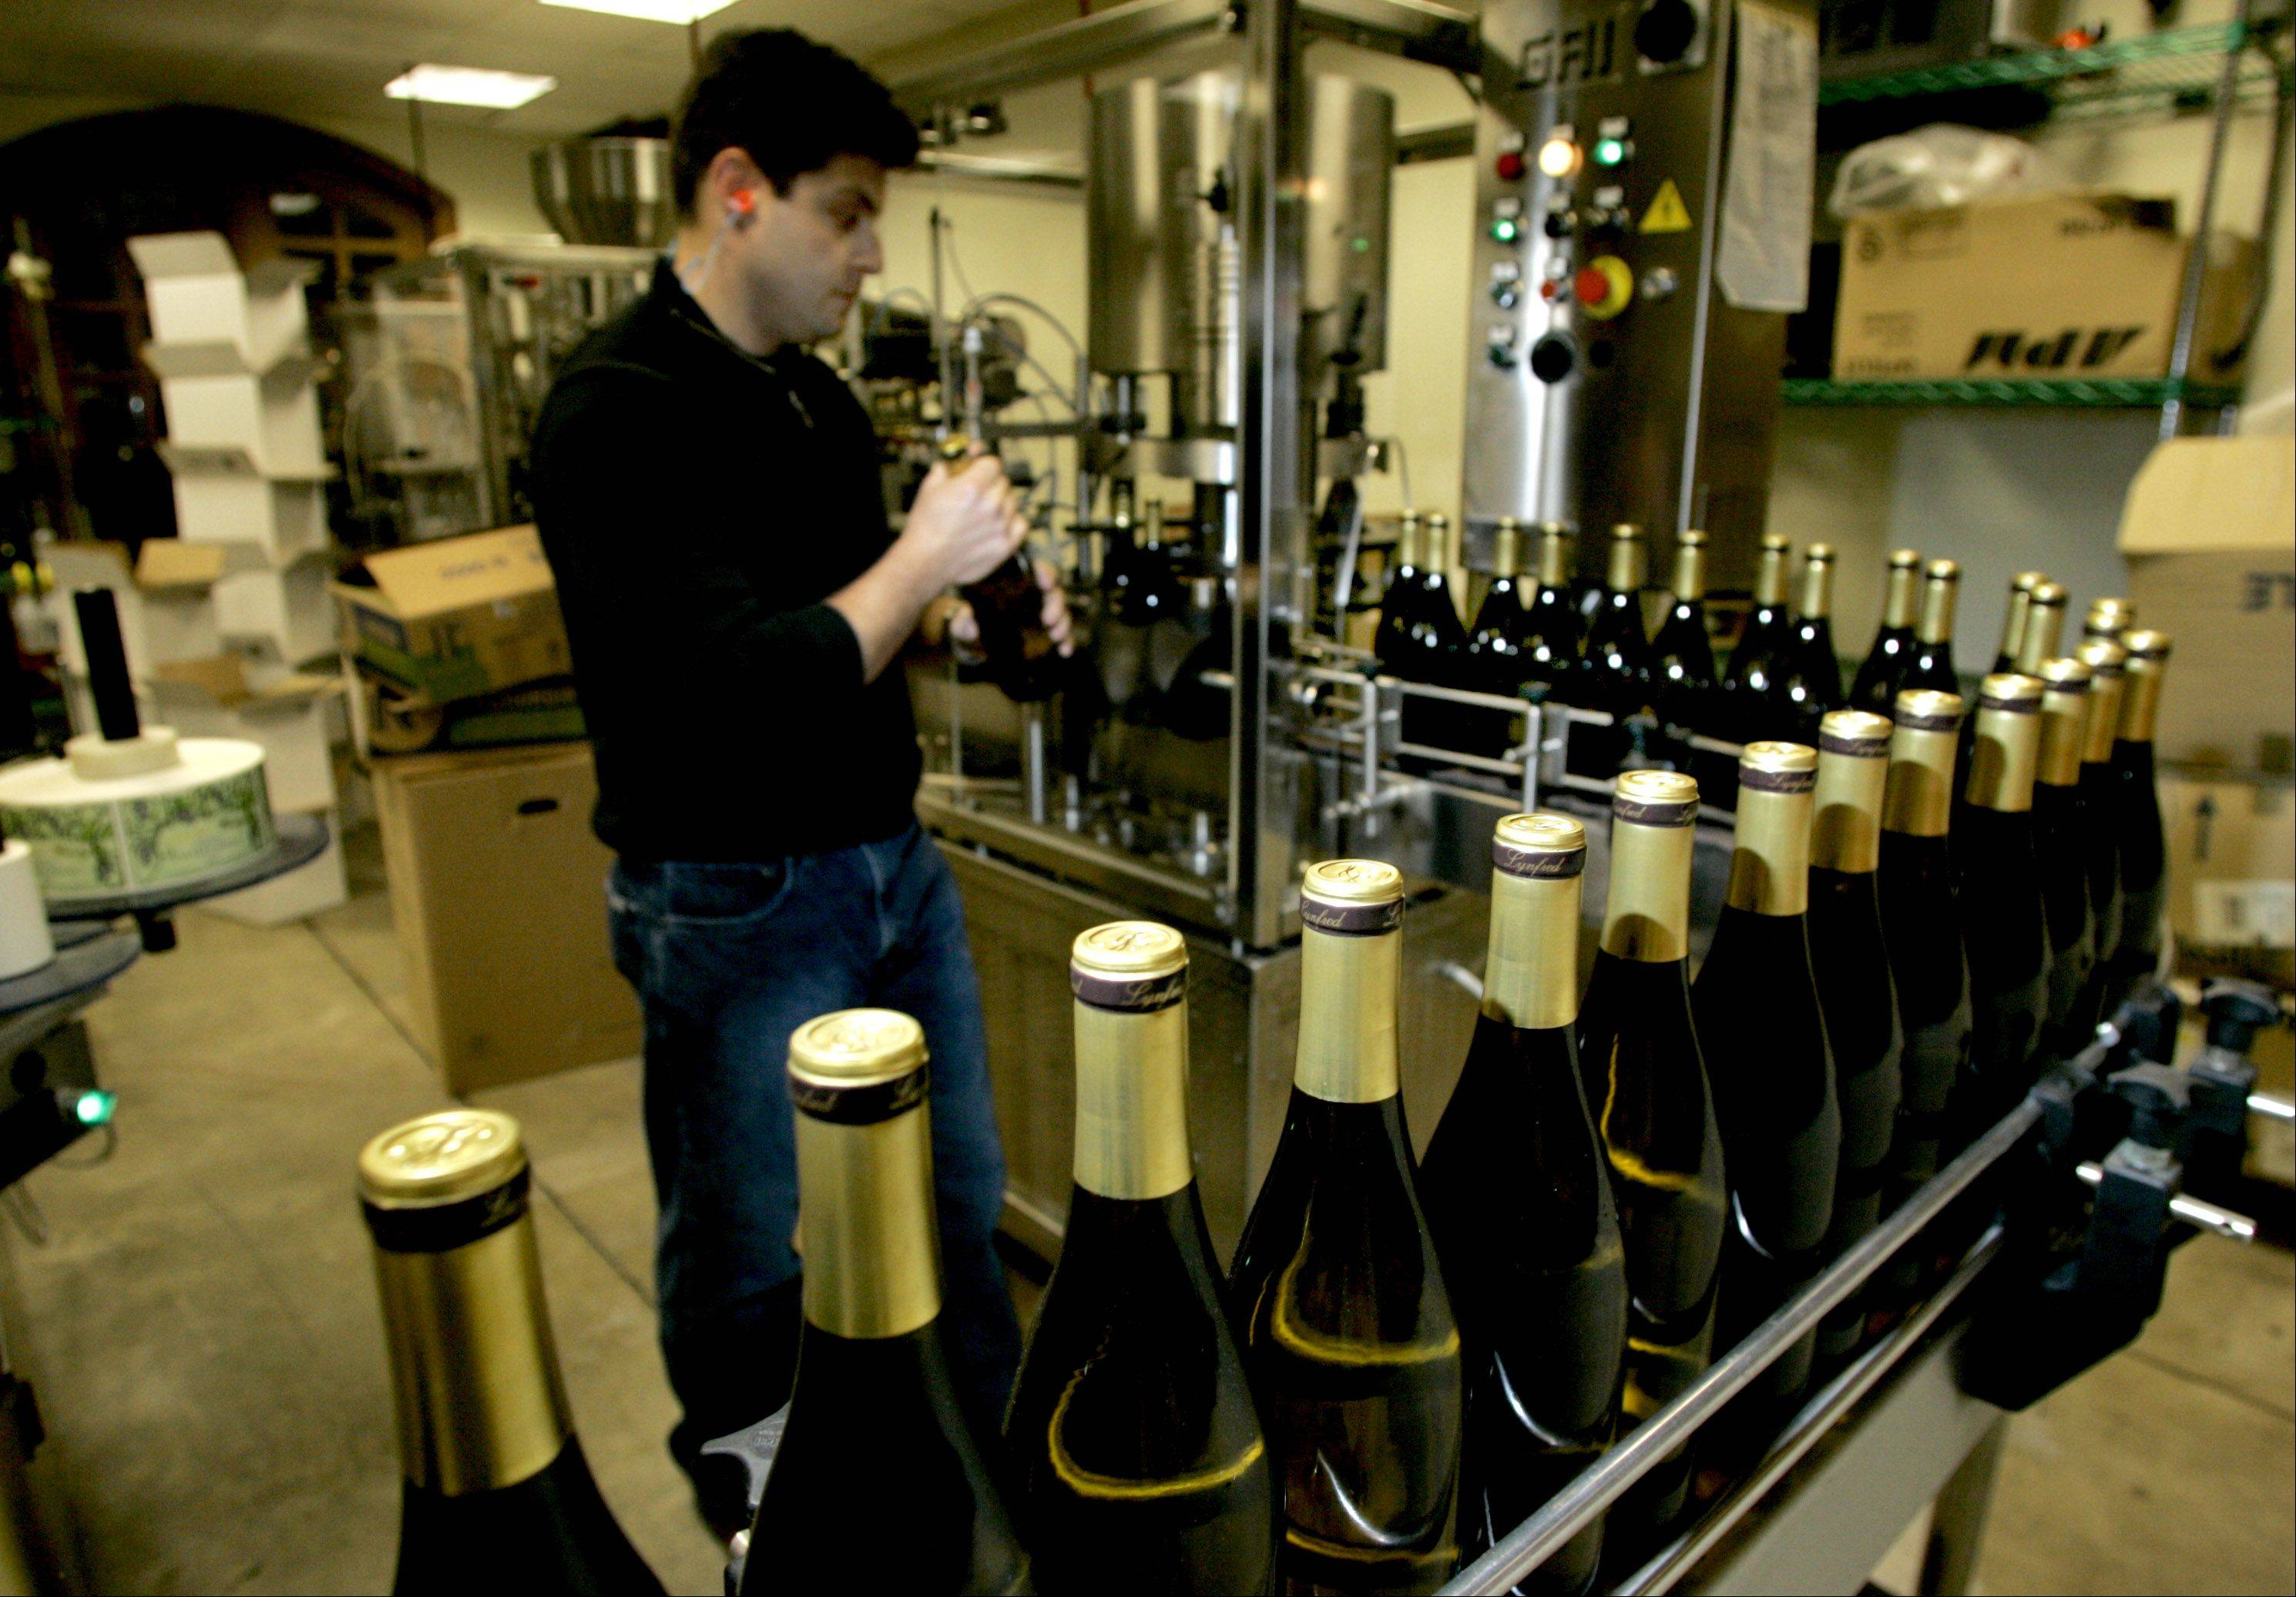 Winemaker Andres Basso oversees bottles of Chardonnay coming off the line to be boxed up at Lynfred Winery in Roselle.